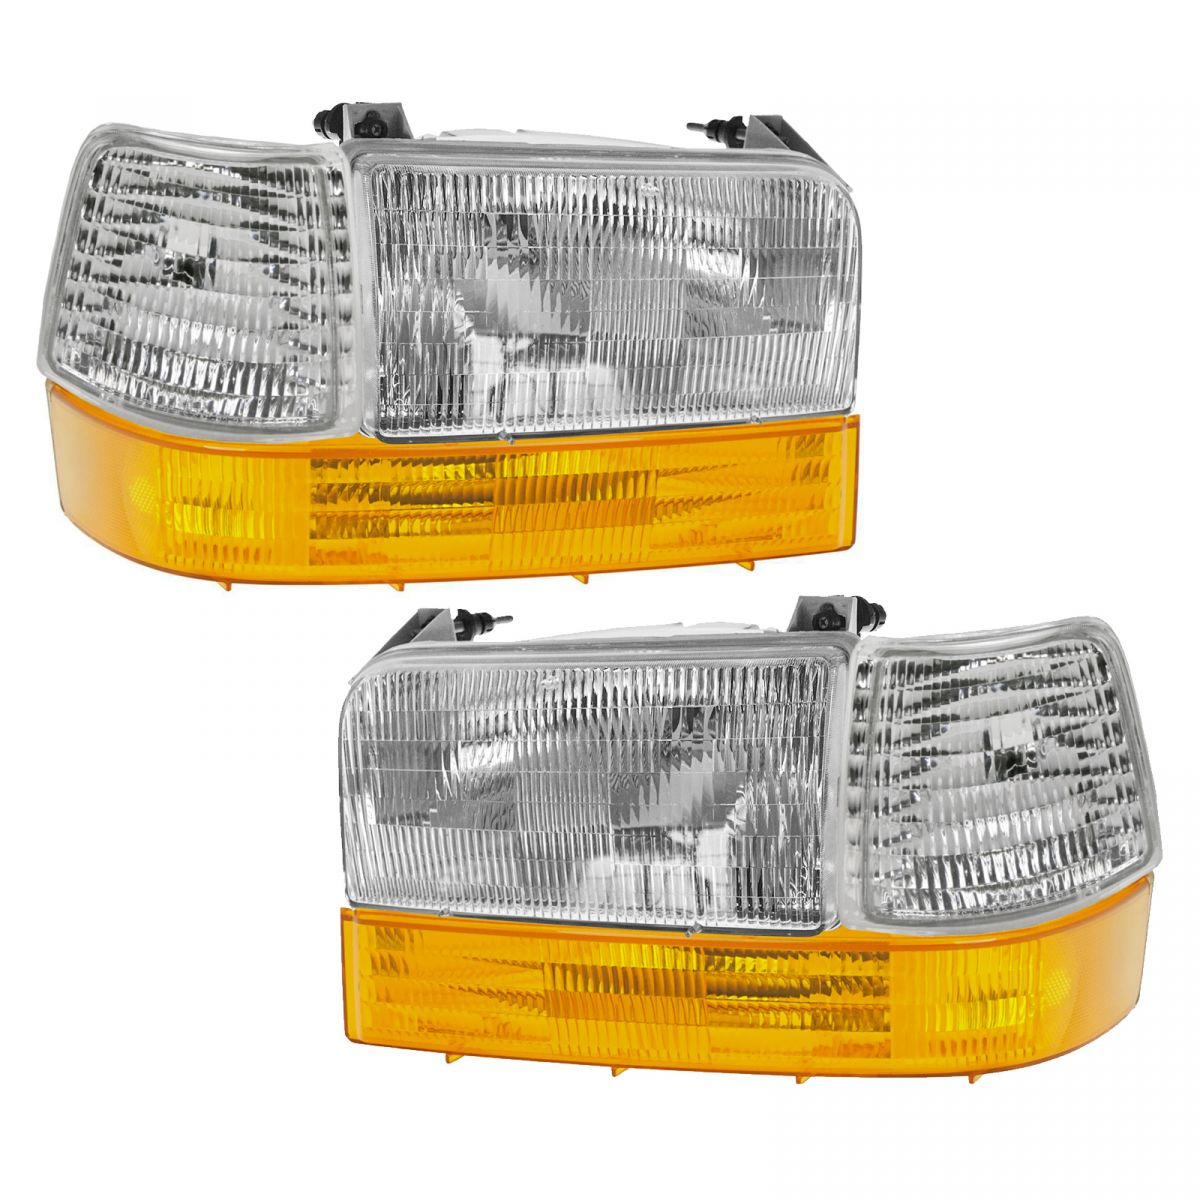 Headlights & Parking Corner Lights Left & Right Pair Set for Ford Truck Bronco